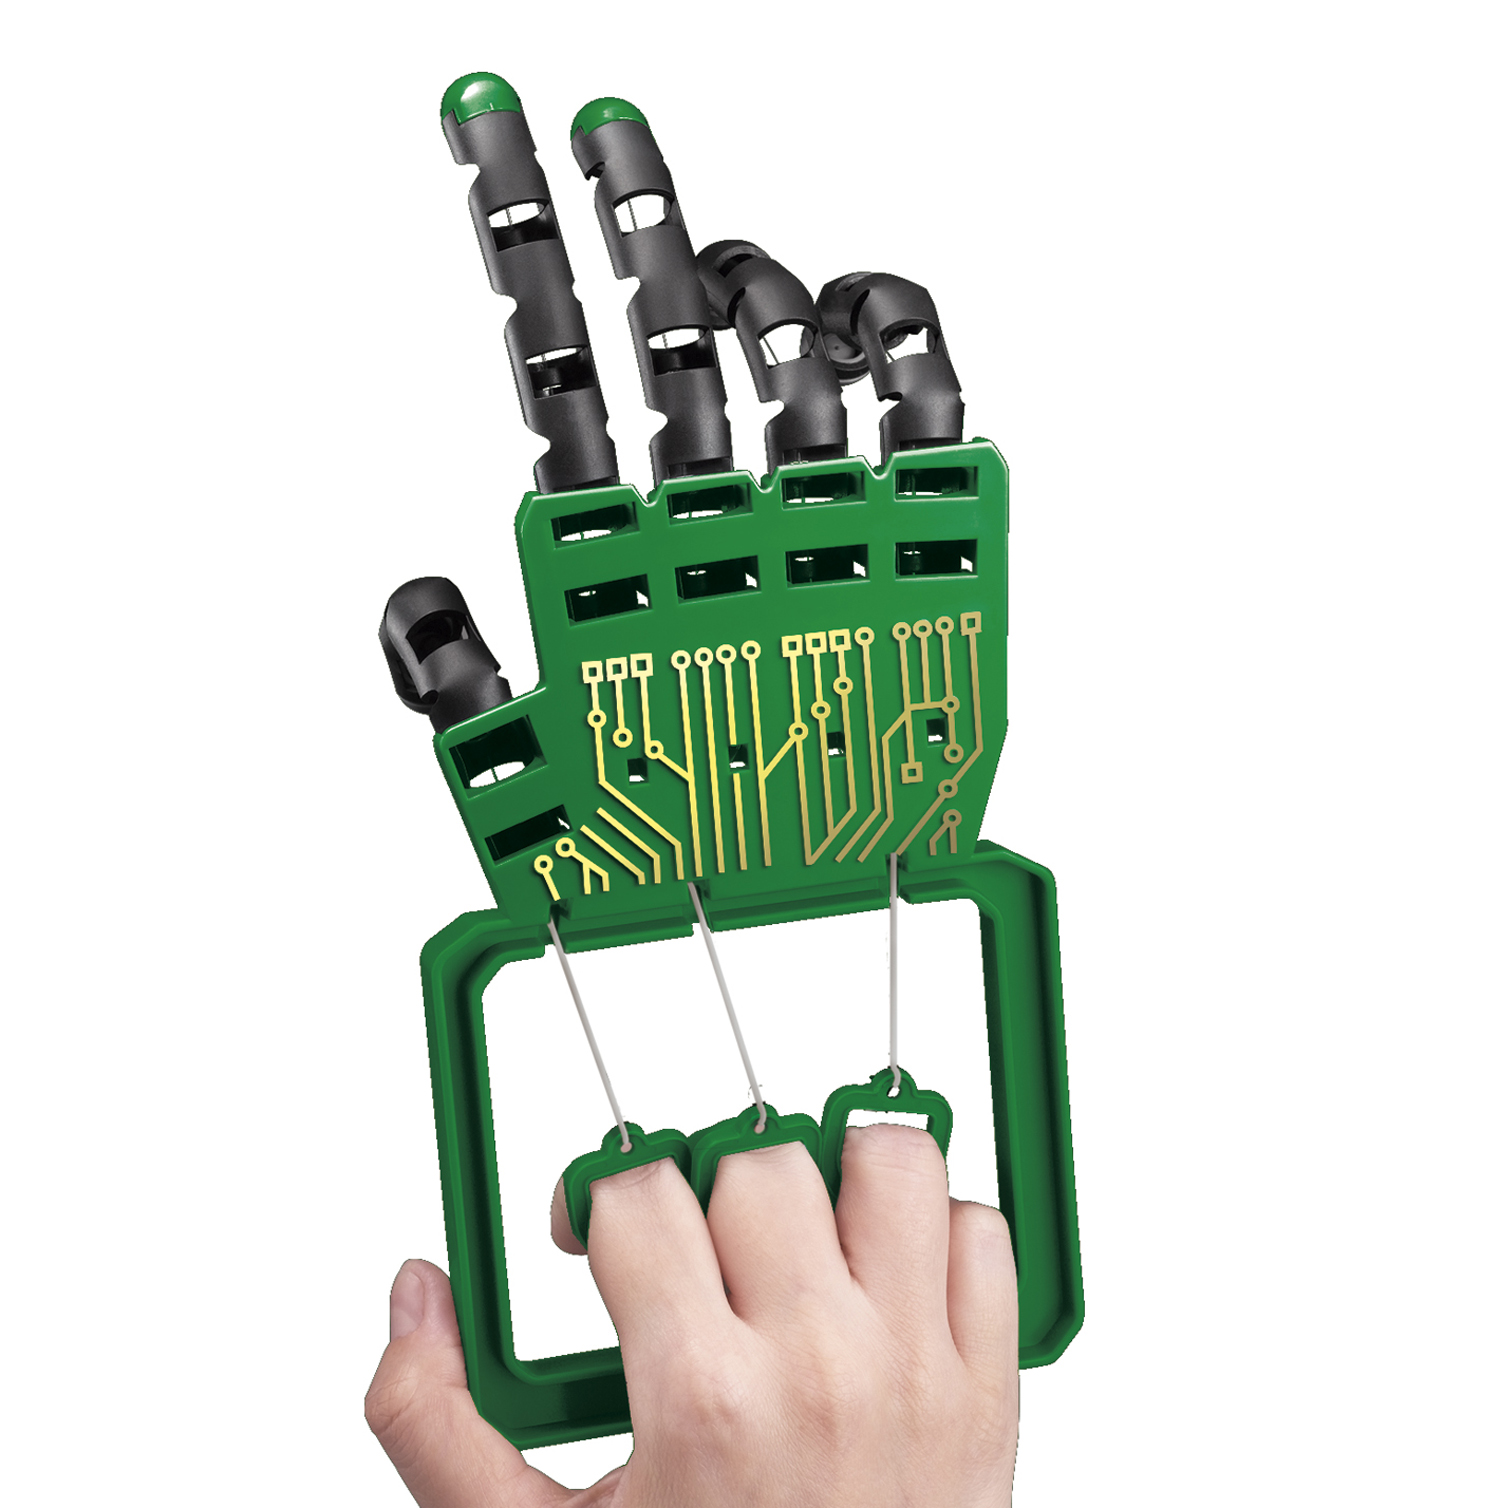 4M KidzLabs Robotic Hand Educational Toys - Switched on kids